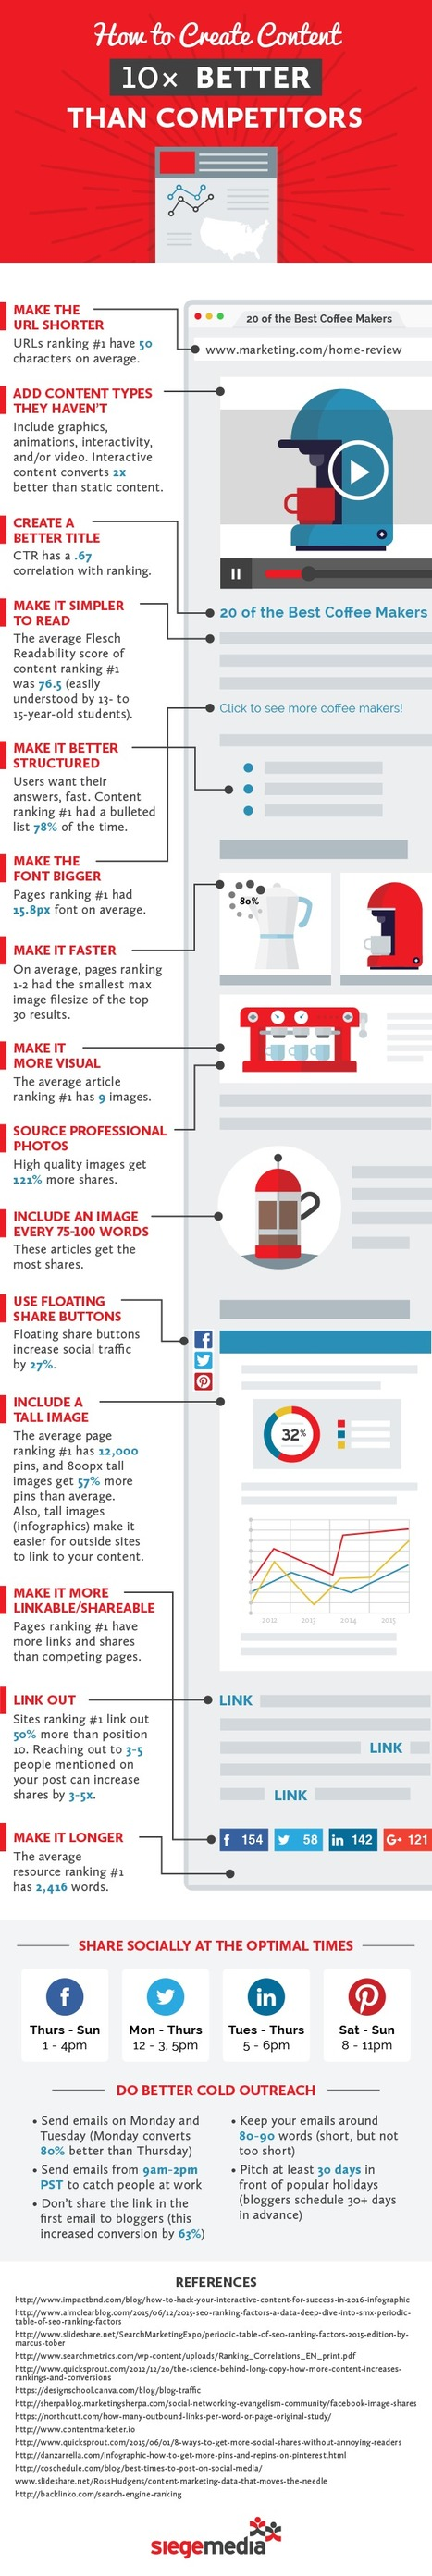 How to Create Content 10x Better Than Your Competitors #Infographic | e-commerce & social media | Scoop.it